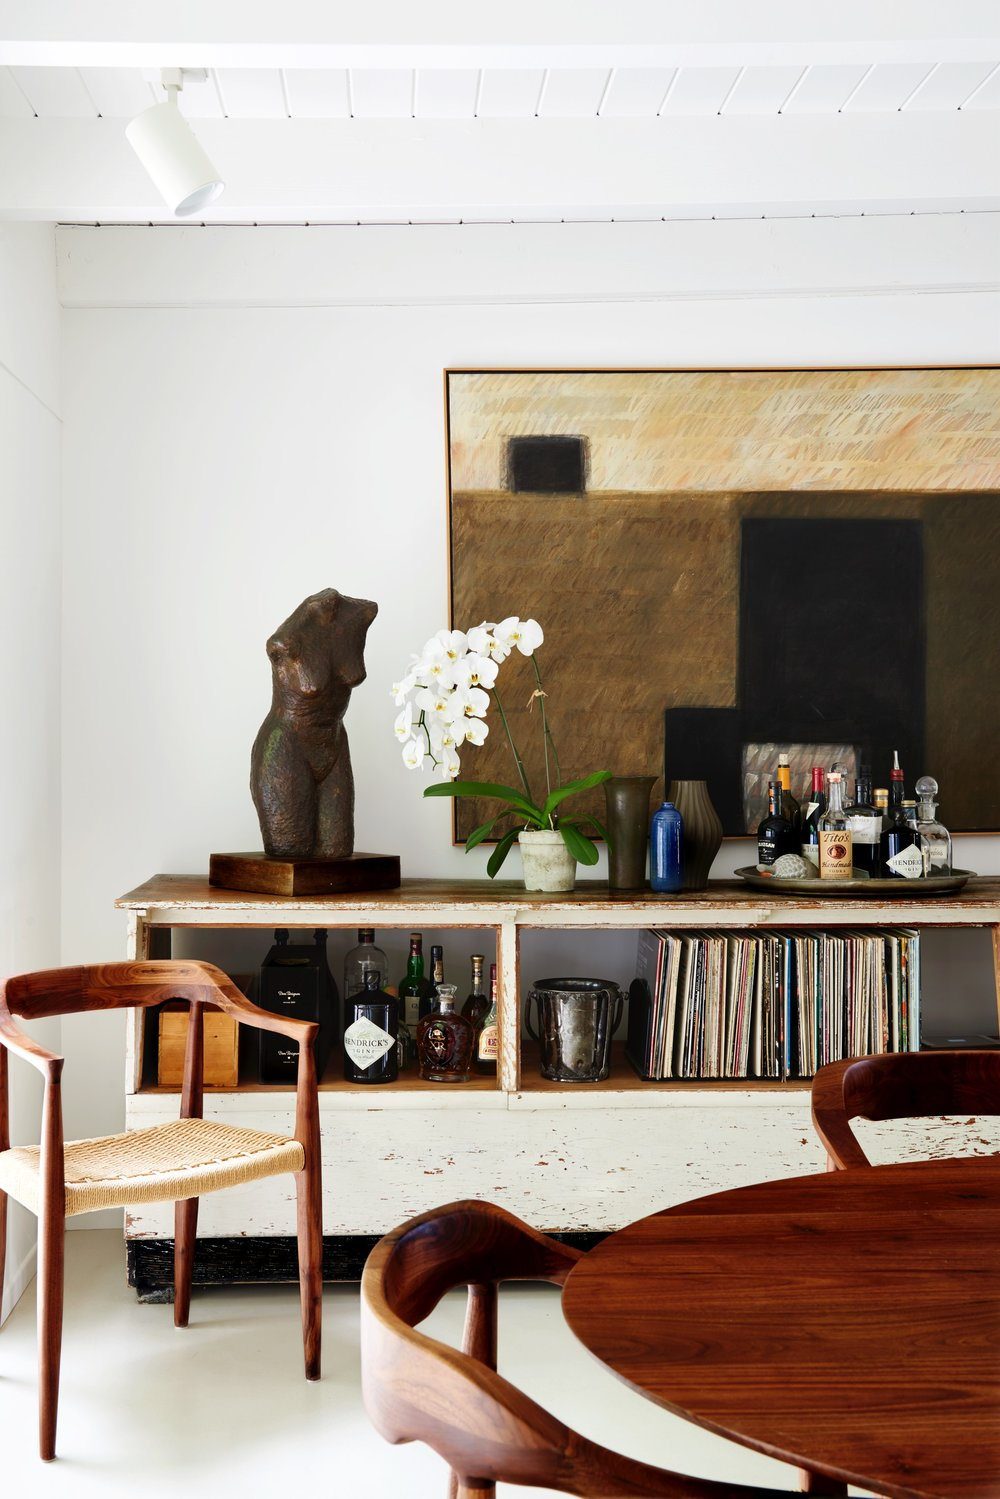 rnd_valley_dining_credenza-072_retouched.jpg